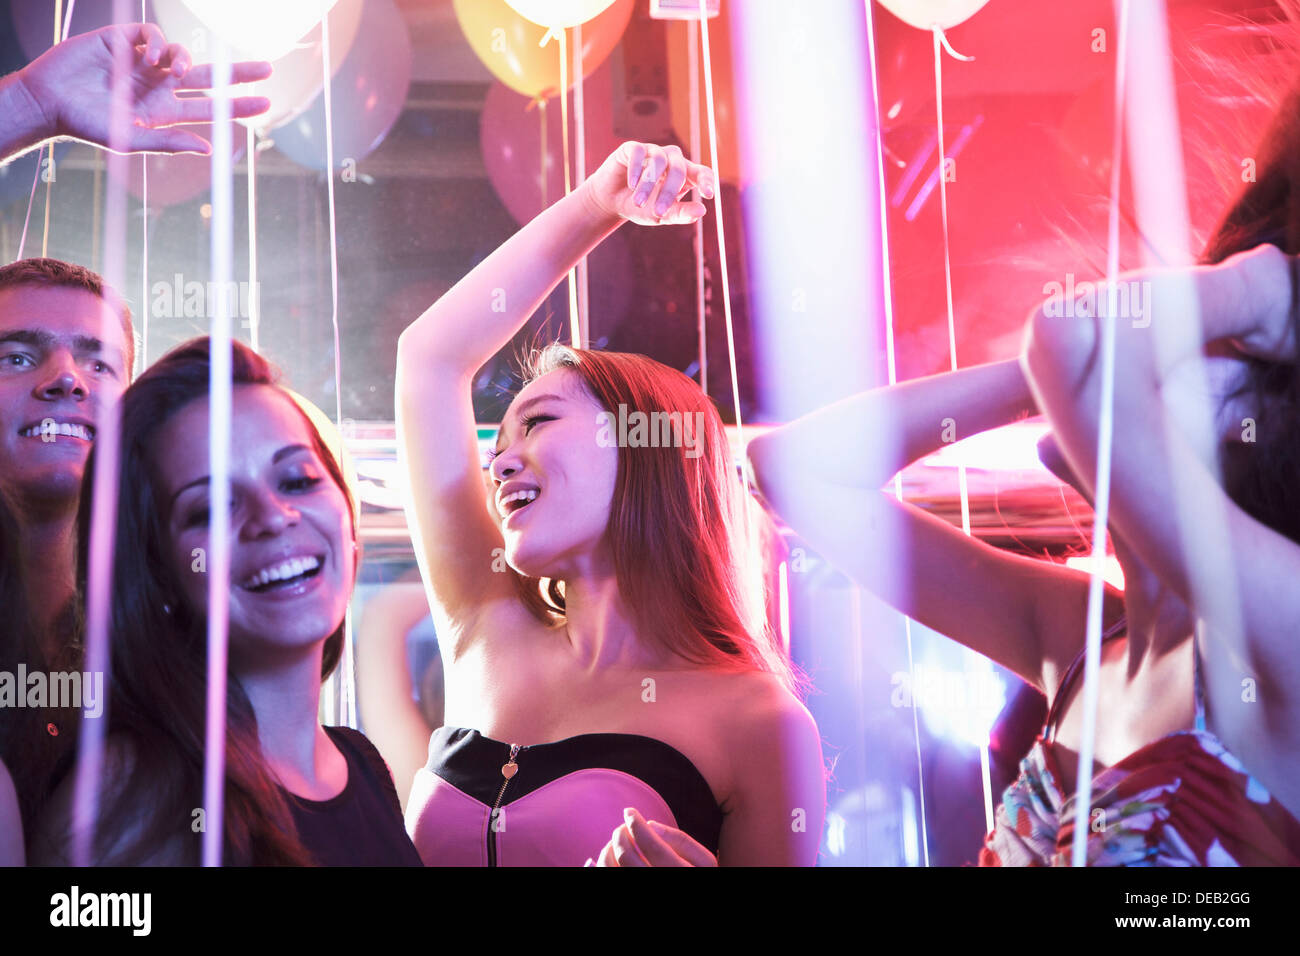 Multi-ethnic group of friends with hands in the air dancing among balloons in a nightclub - Stock Image